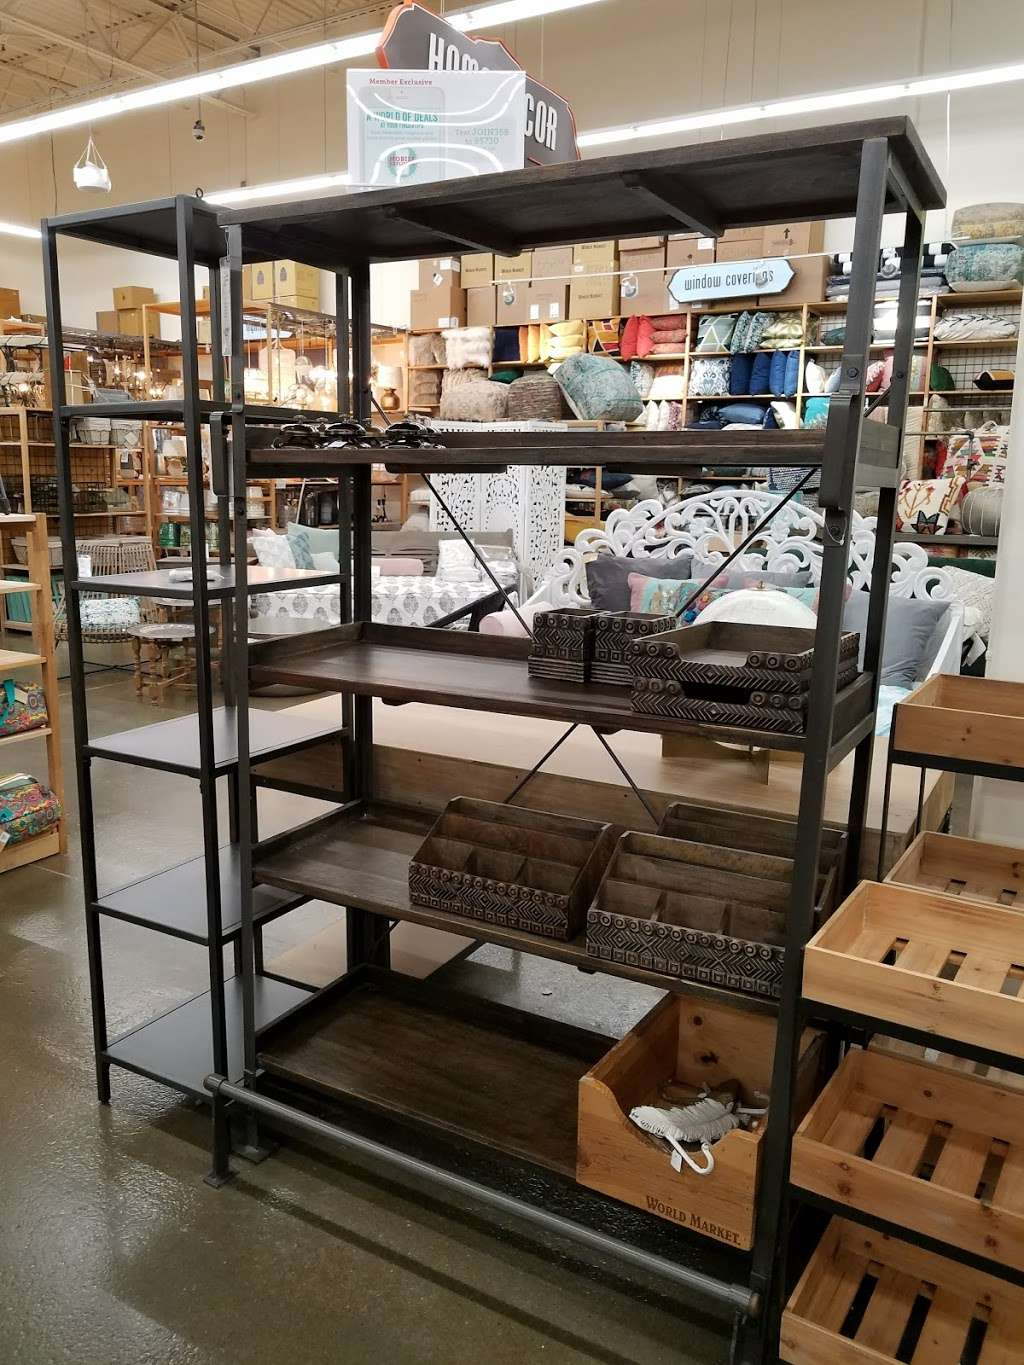 Cost Plus World Market - furniture store  | Photo 3 of 10 | Address: 6625 S Fry Rd, Katy, TX 77494, USA | Phone: (281) 391-1700